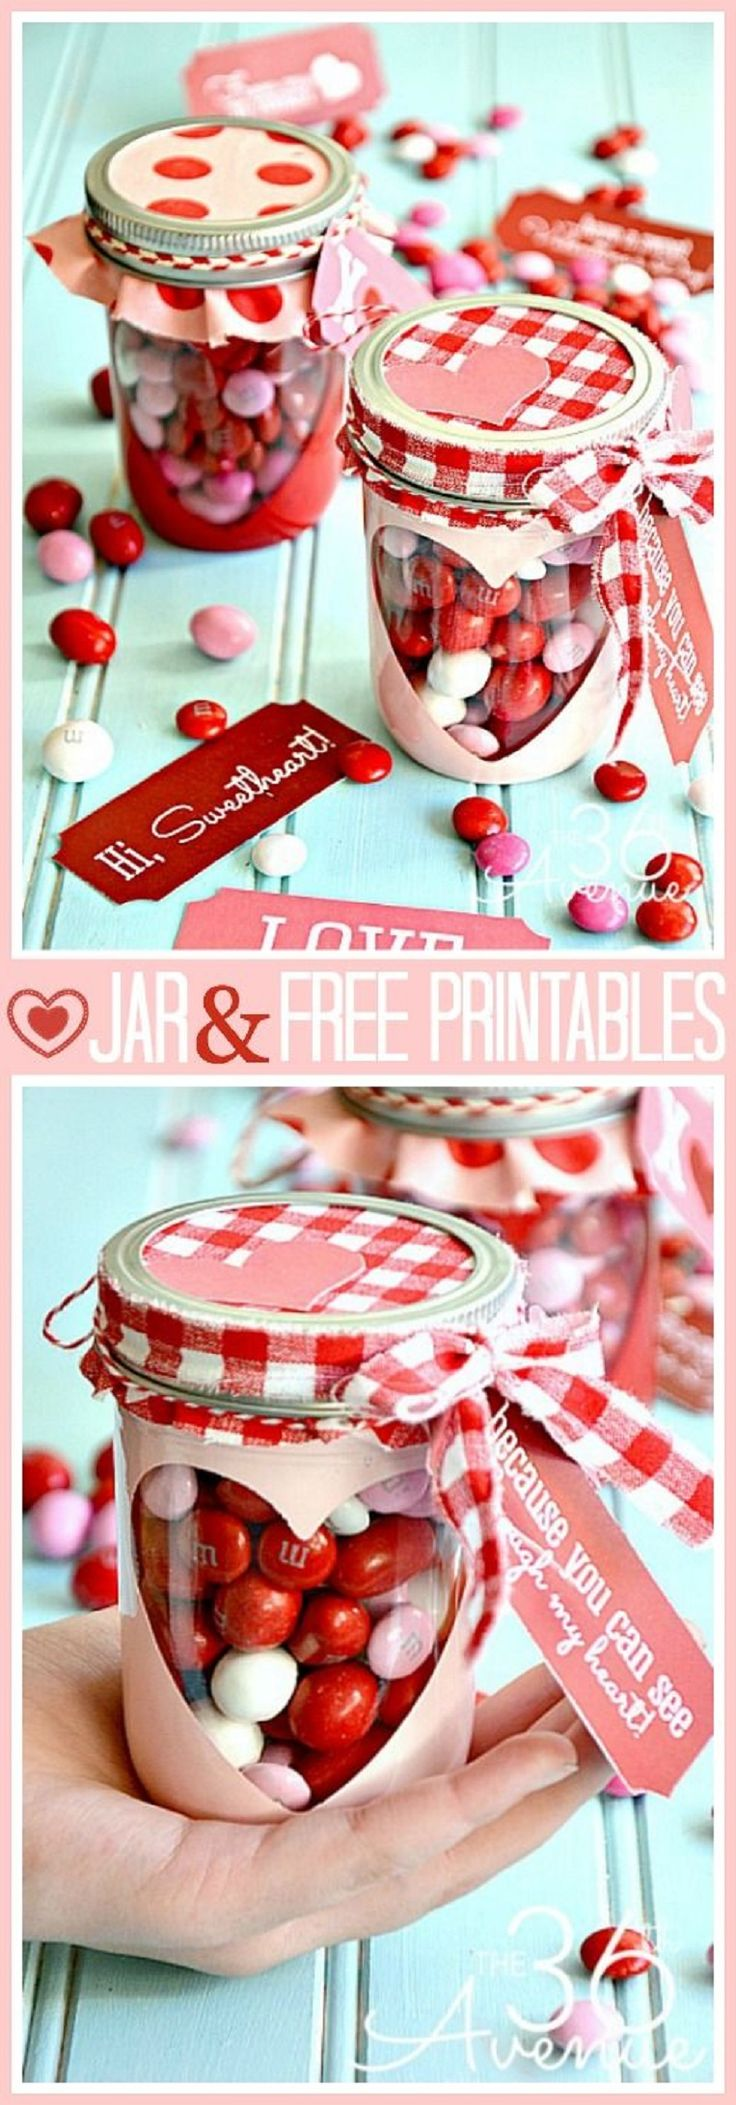 Free-Valentine-Printable-and-Heart-Candy-Jar.jpg (763×2183)